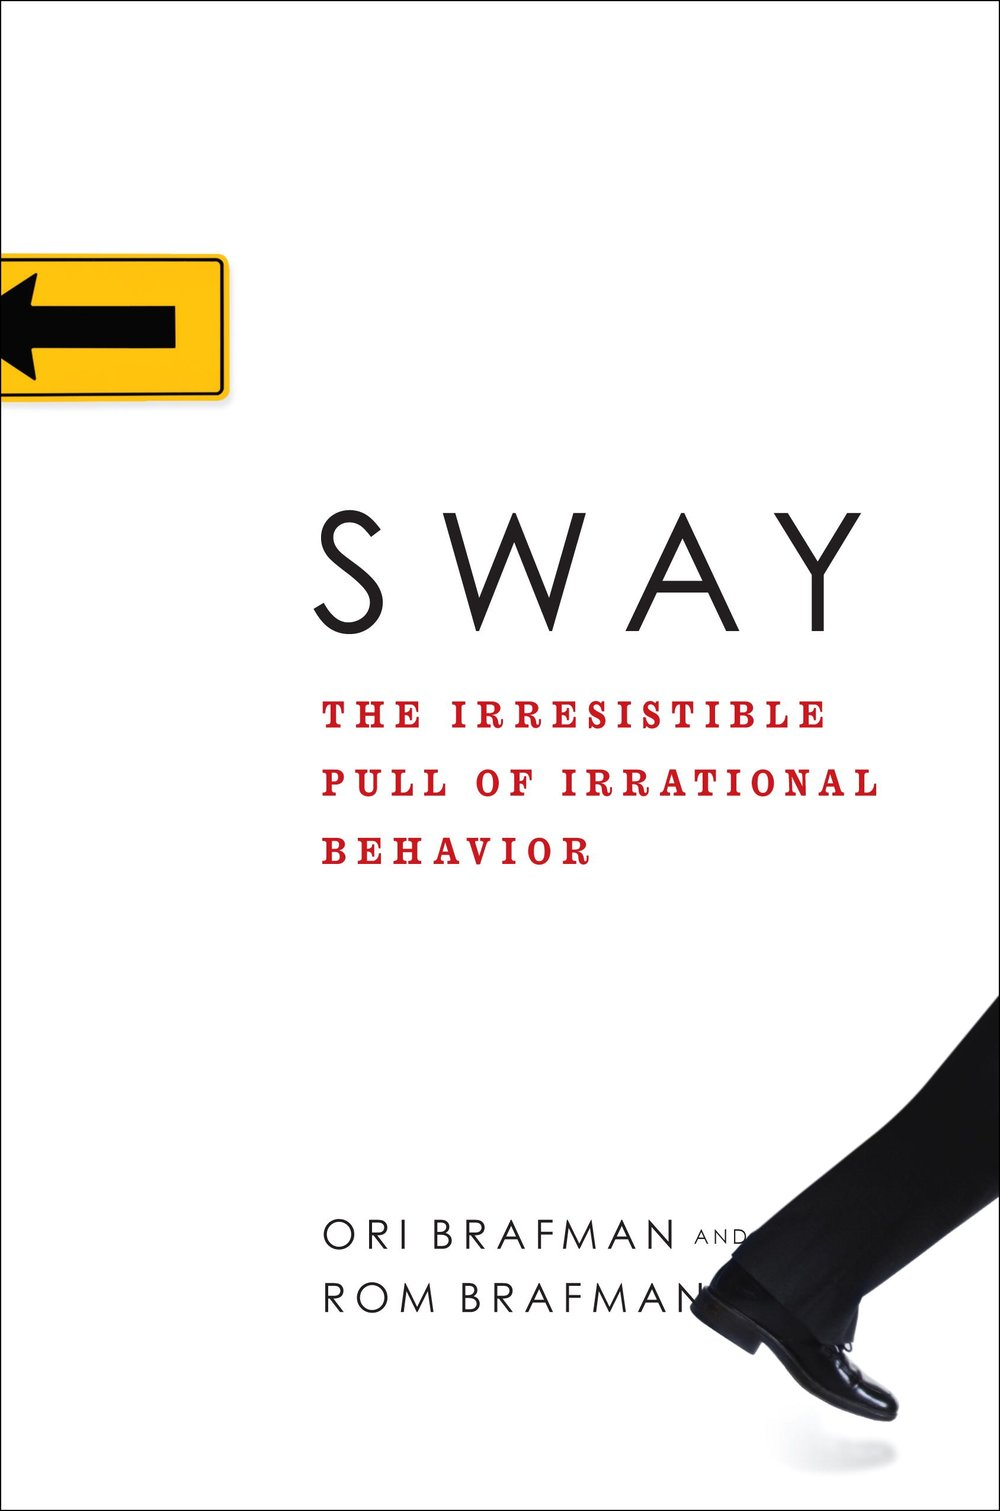 Book Cover - Sway.jpg